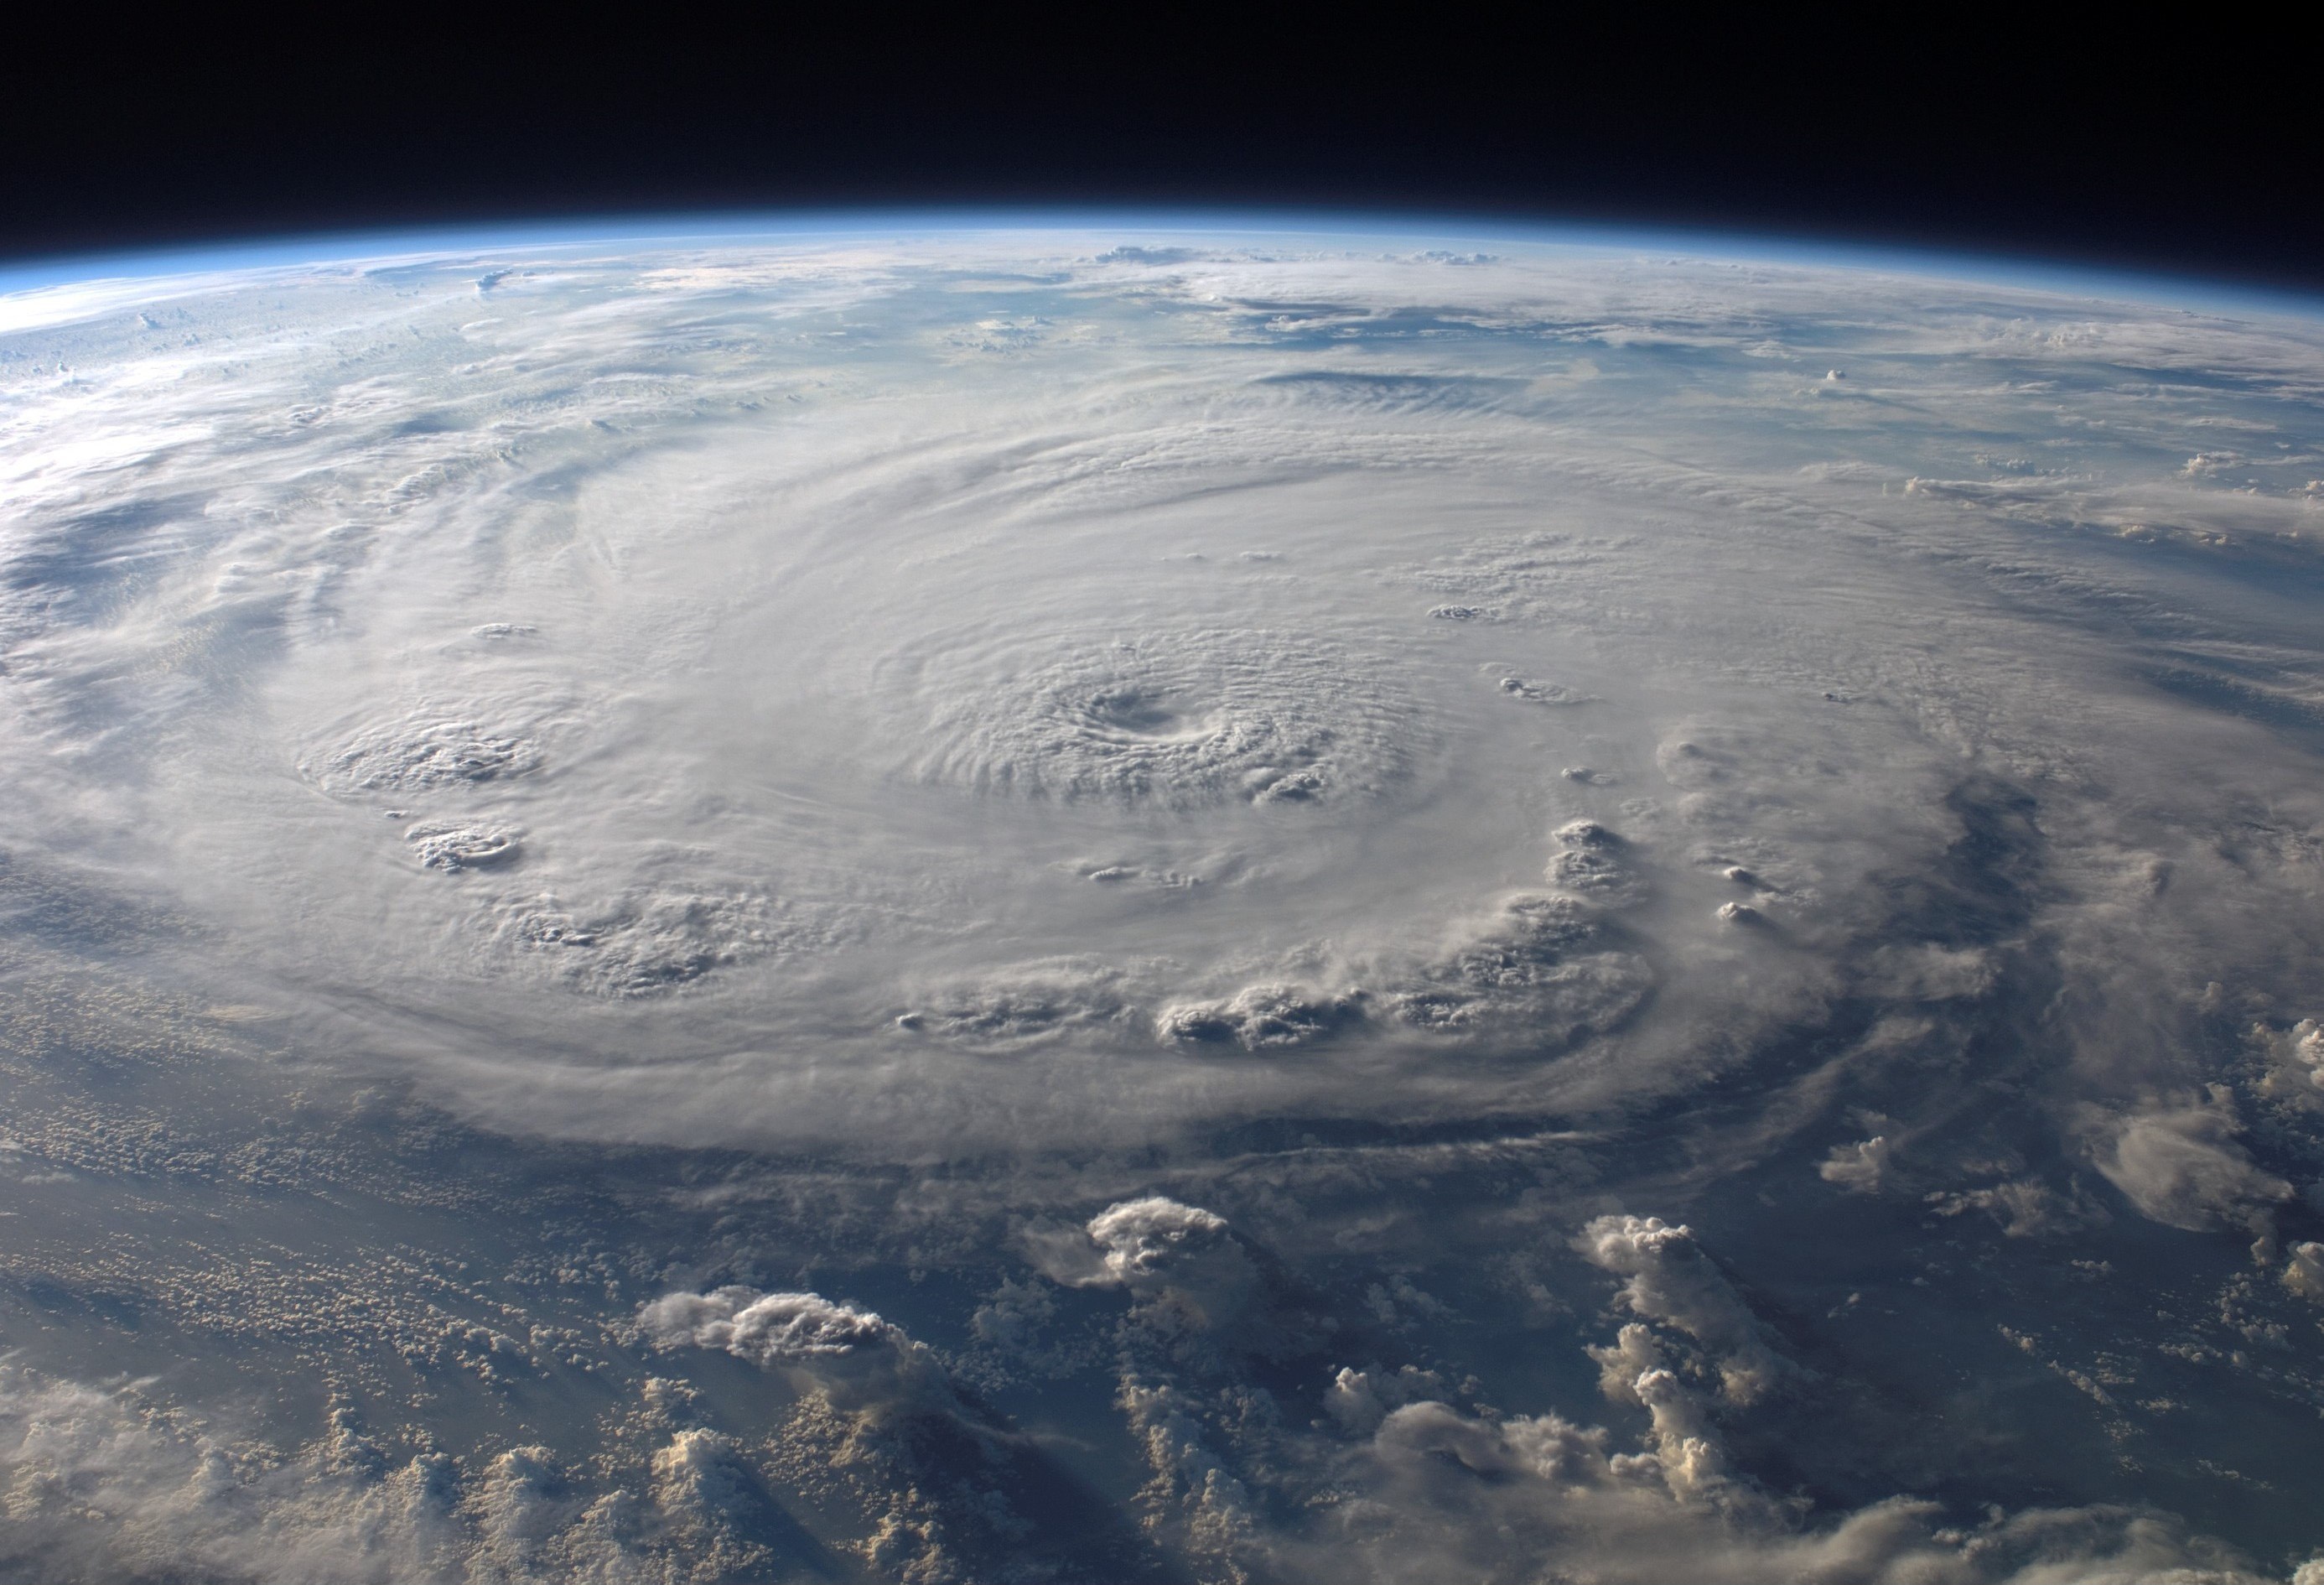 Hurricane Felix near peak intensity, as seen from the International Space Station.